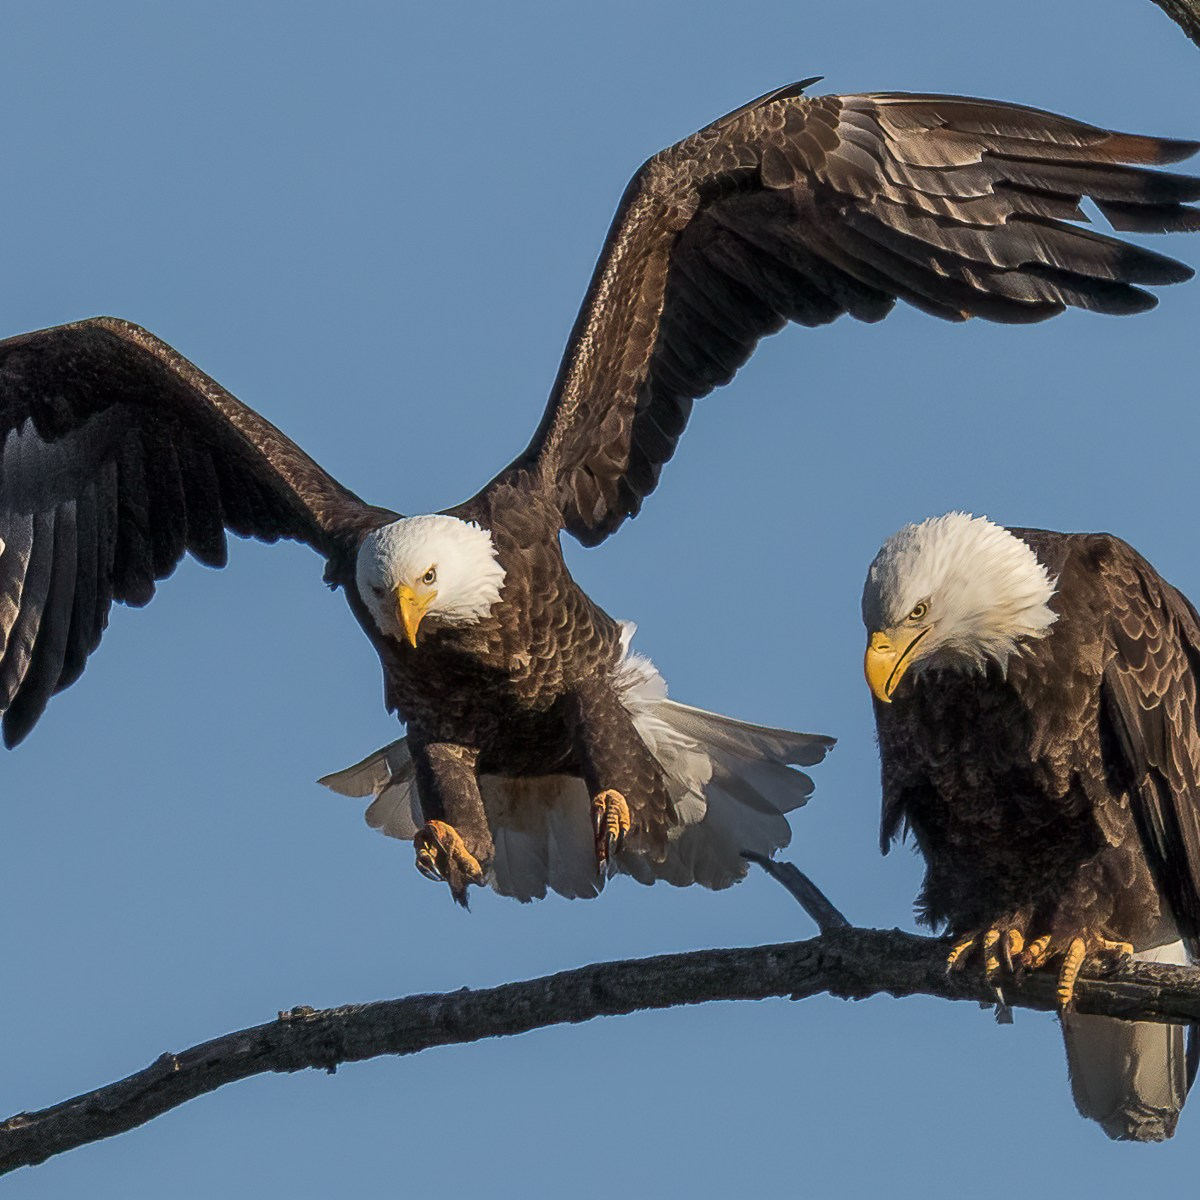 A bald eagle perched on a branch while a second prepares to land next to it